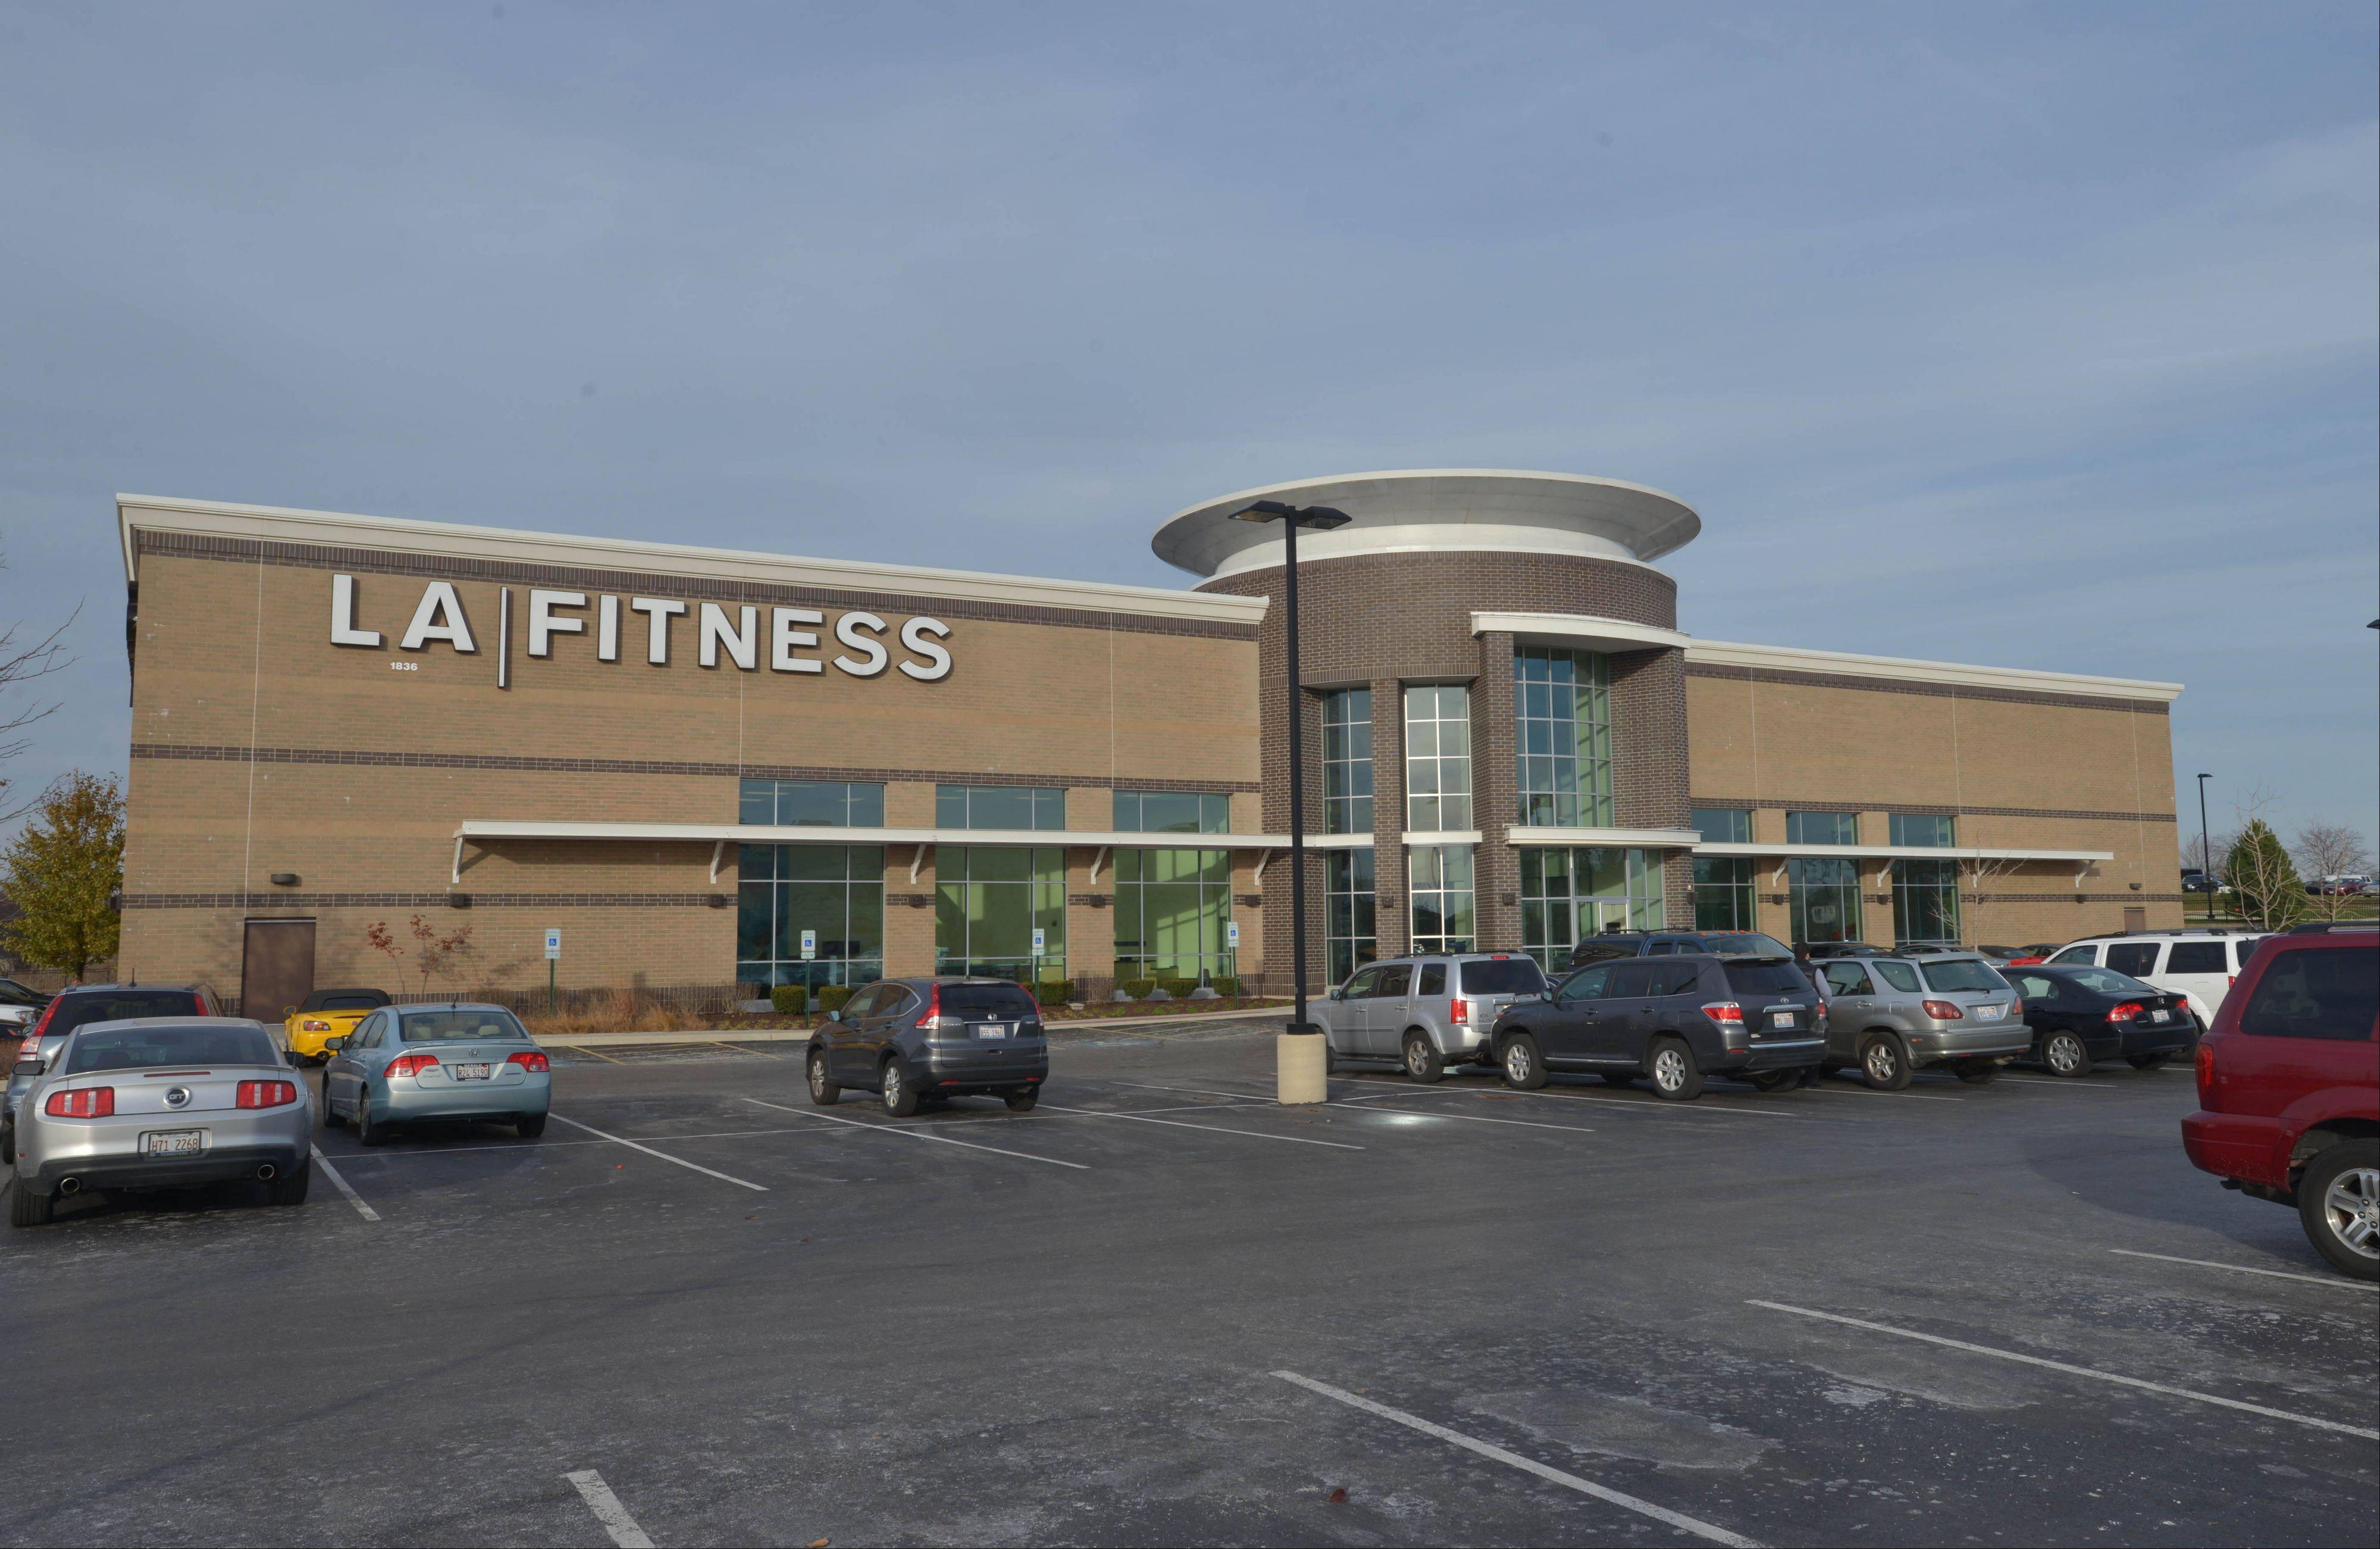 The DuPage County Health Department says two men contracted Legionnaires' disease from a hot tub at the LA Fitness at 1836 Freedom Drive in Naperville.